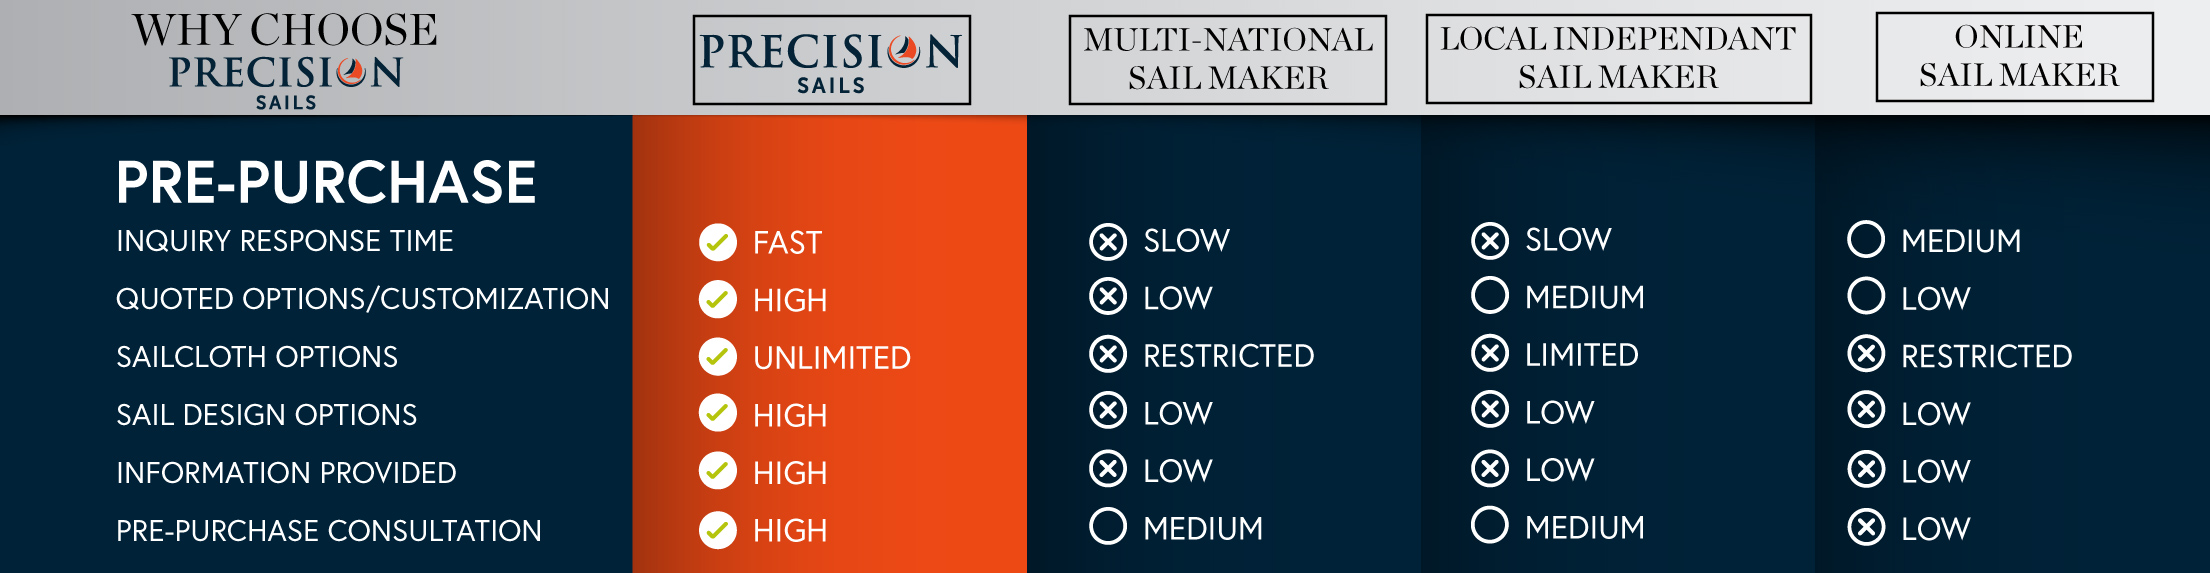 the reasons why precision sails is different from other lofts from pre-purchase customer prespective